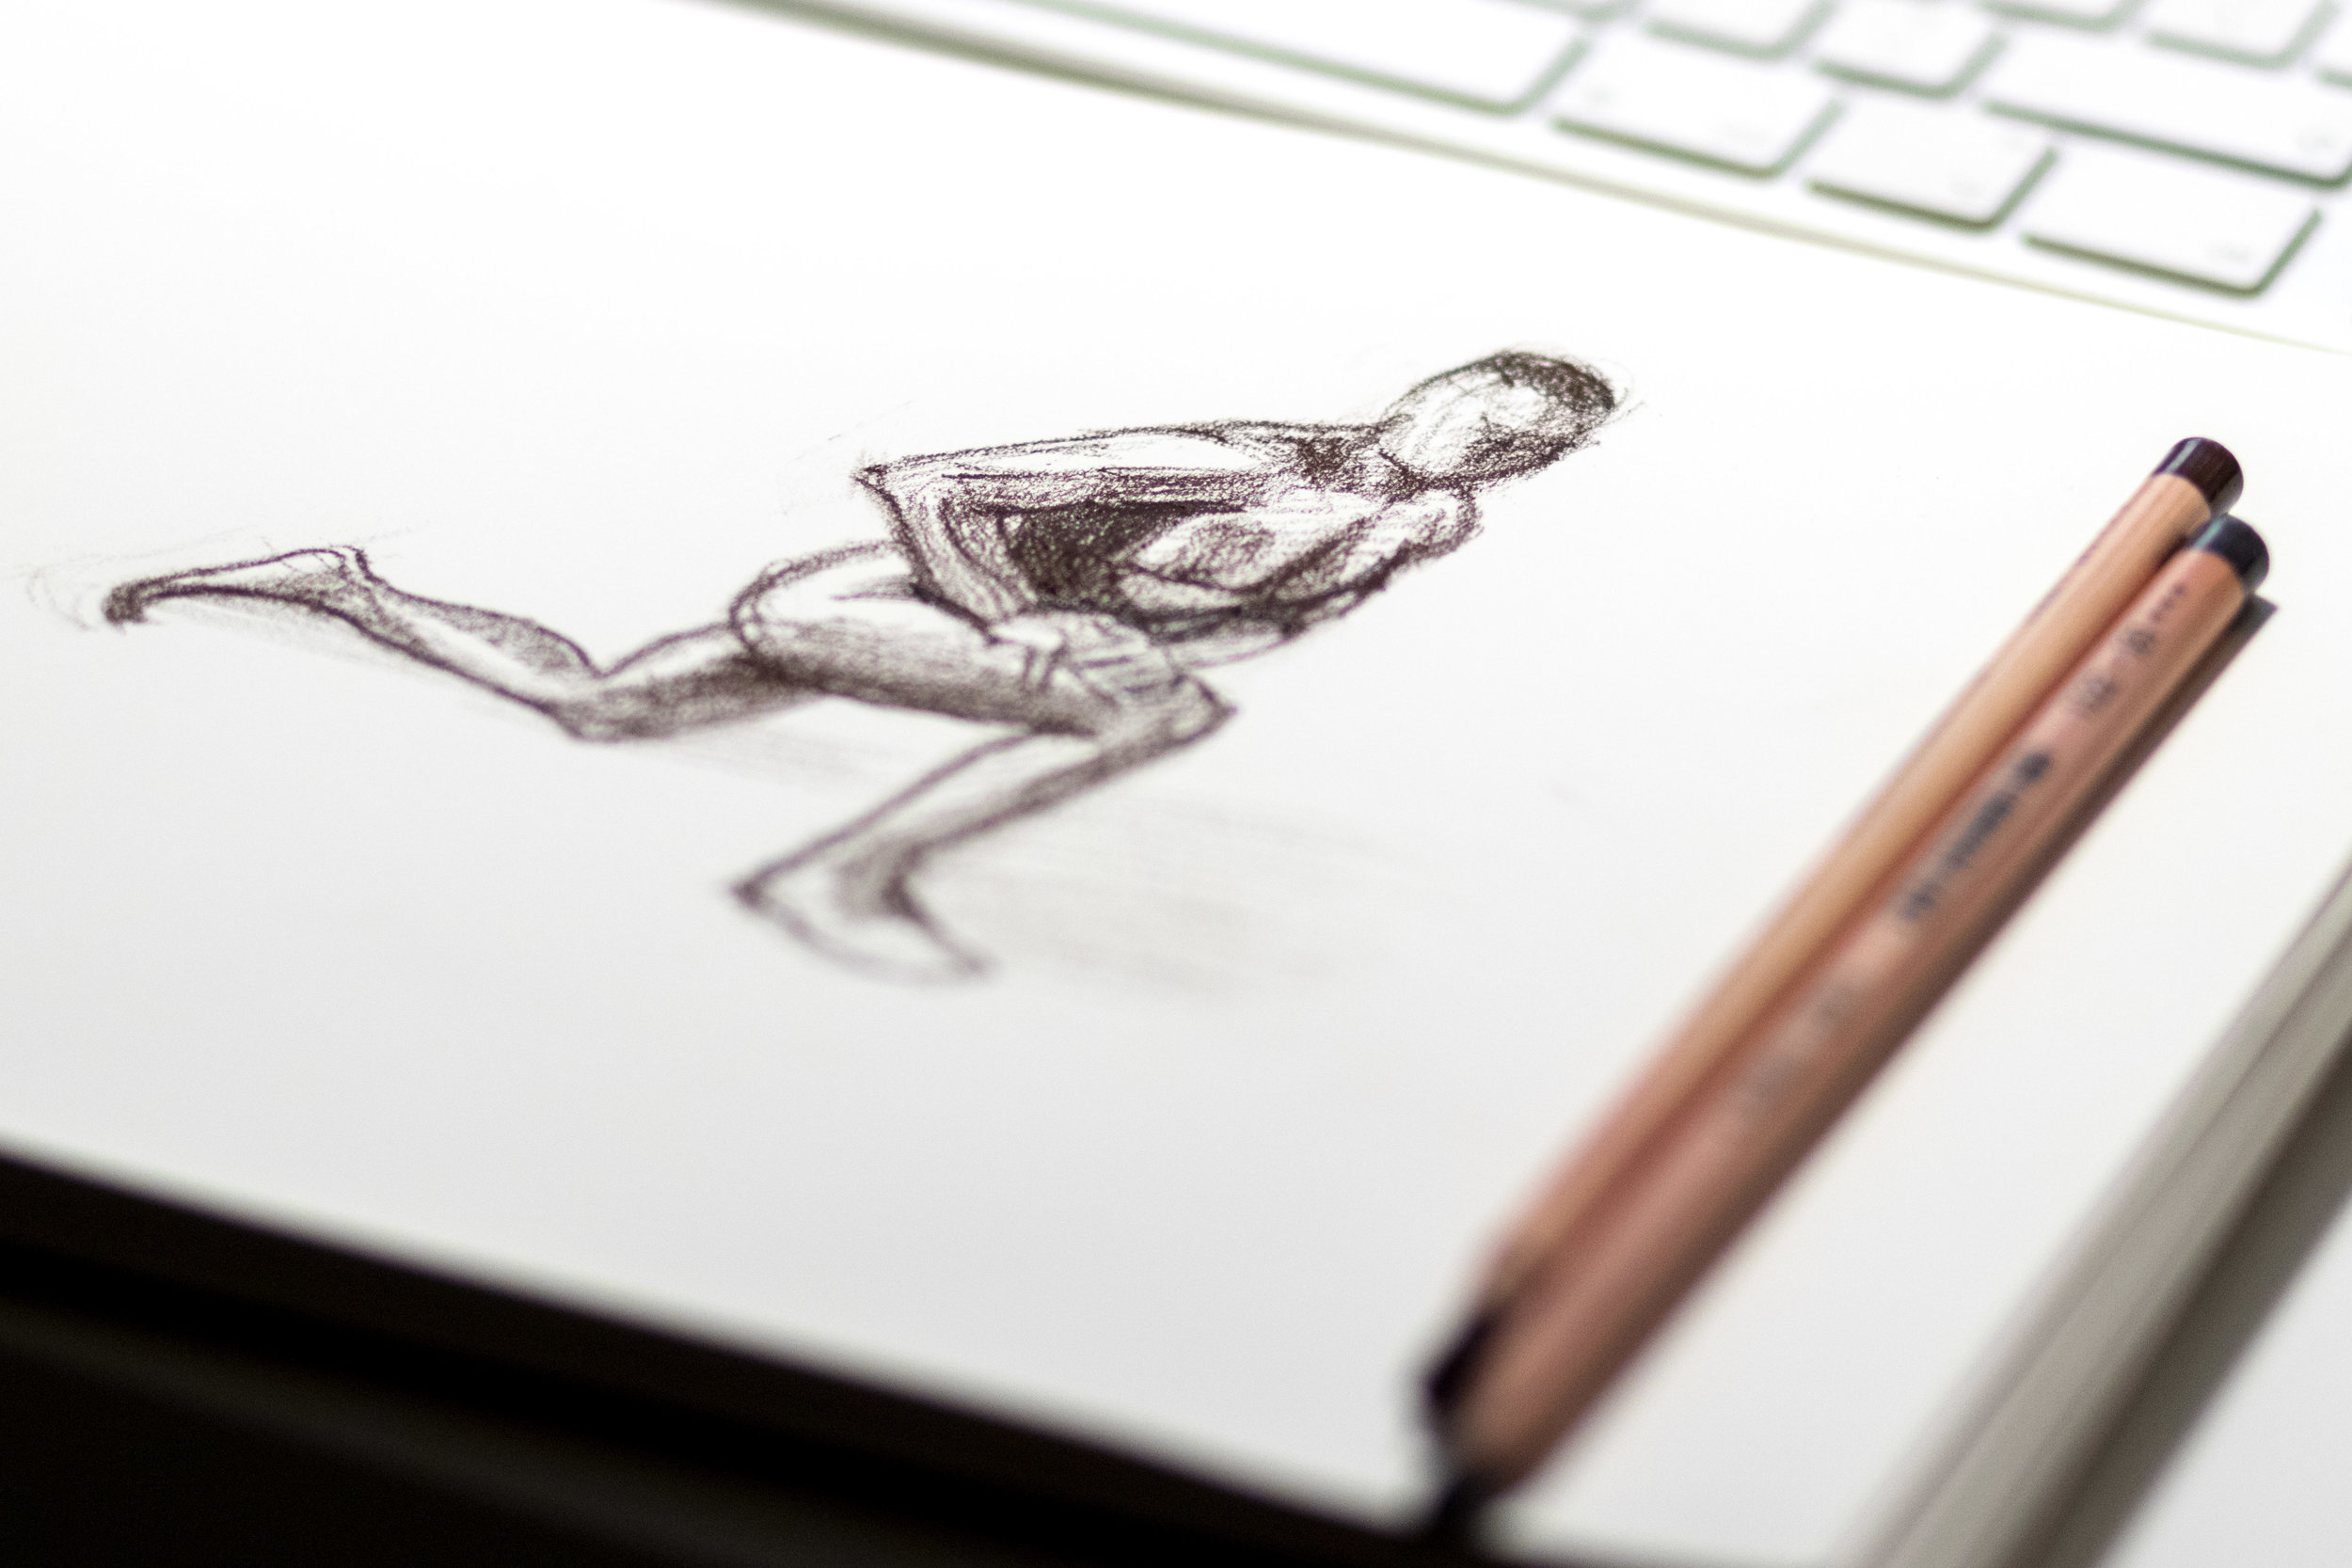 SATURDAY 21ST SEPTEMBER2.00 – 4.00PM - Whether you are a beginner at drawing the human body or have experience, all are welcome.Mark Rigby is a lecturer in Art and Design at Cambridge Regional College. He has been running Life Drawing Classes here in Cambridge for a number of years.Maximum spaces: 20Workshop Leader: Mark Rigby